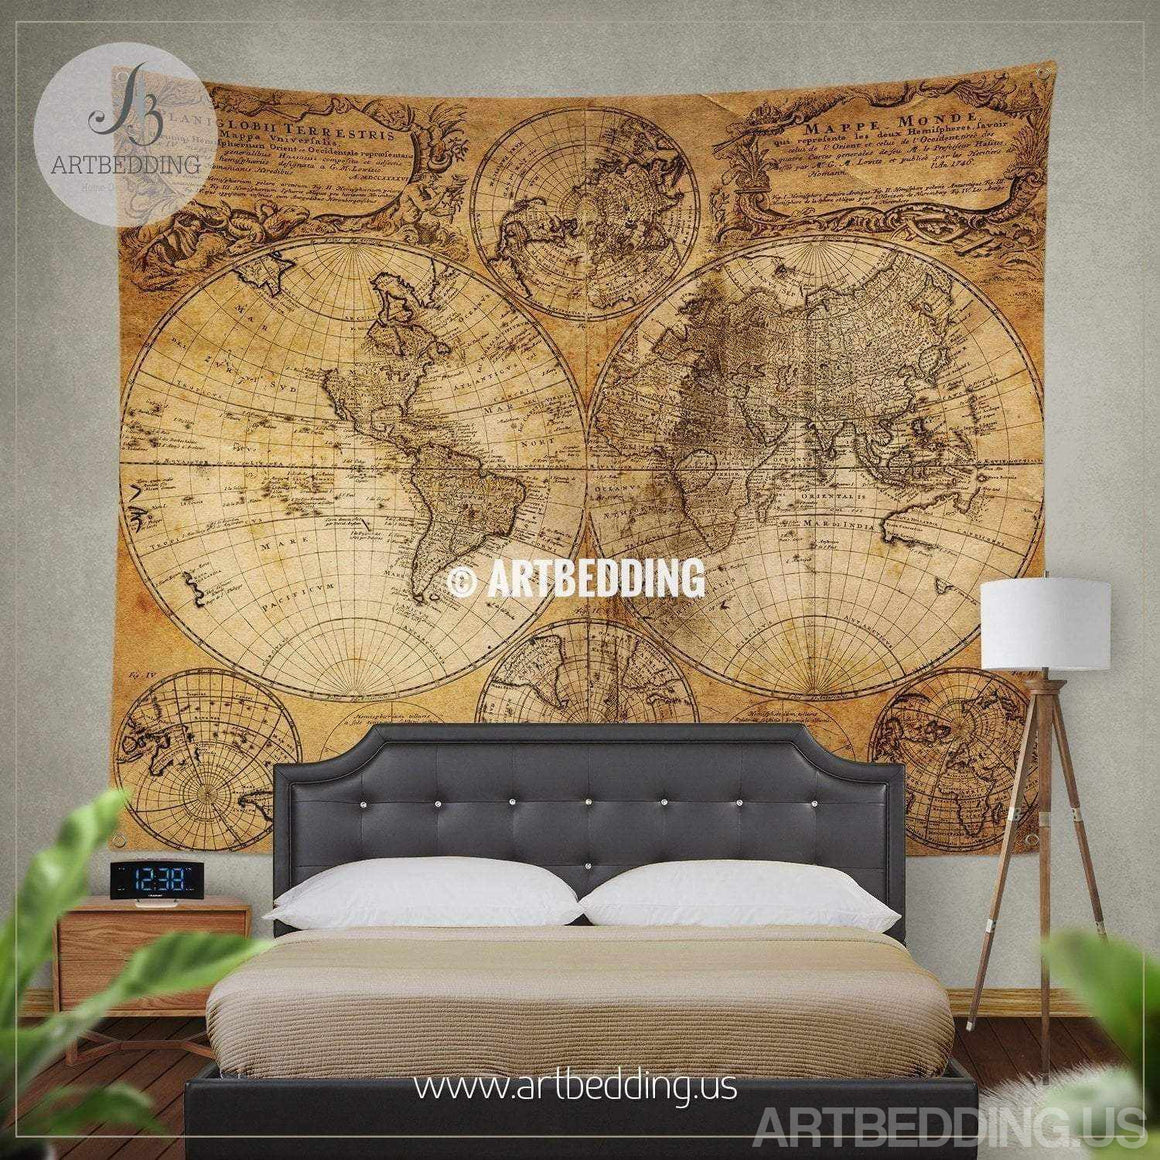 Vintage orld map wall tapestry, Historical world map wall hanging, antique old map wall decor, vintage map wall art print Tapestry